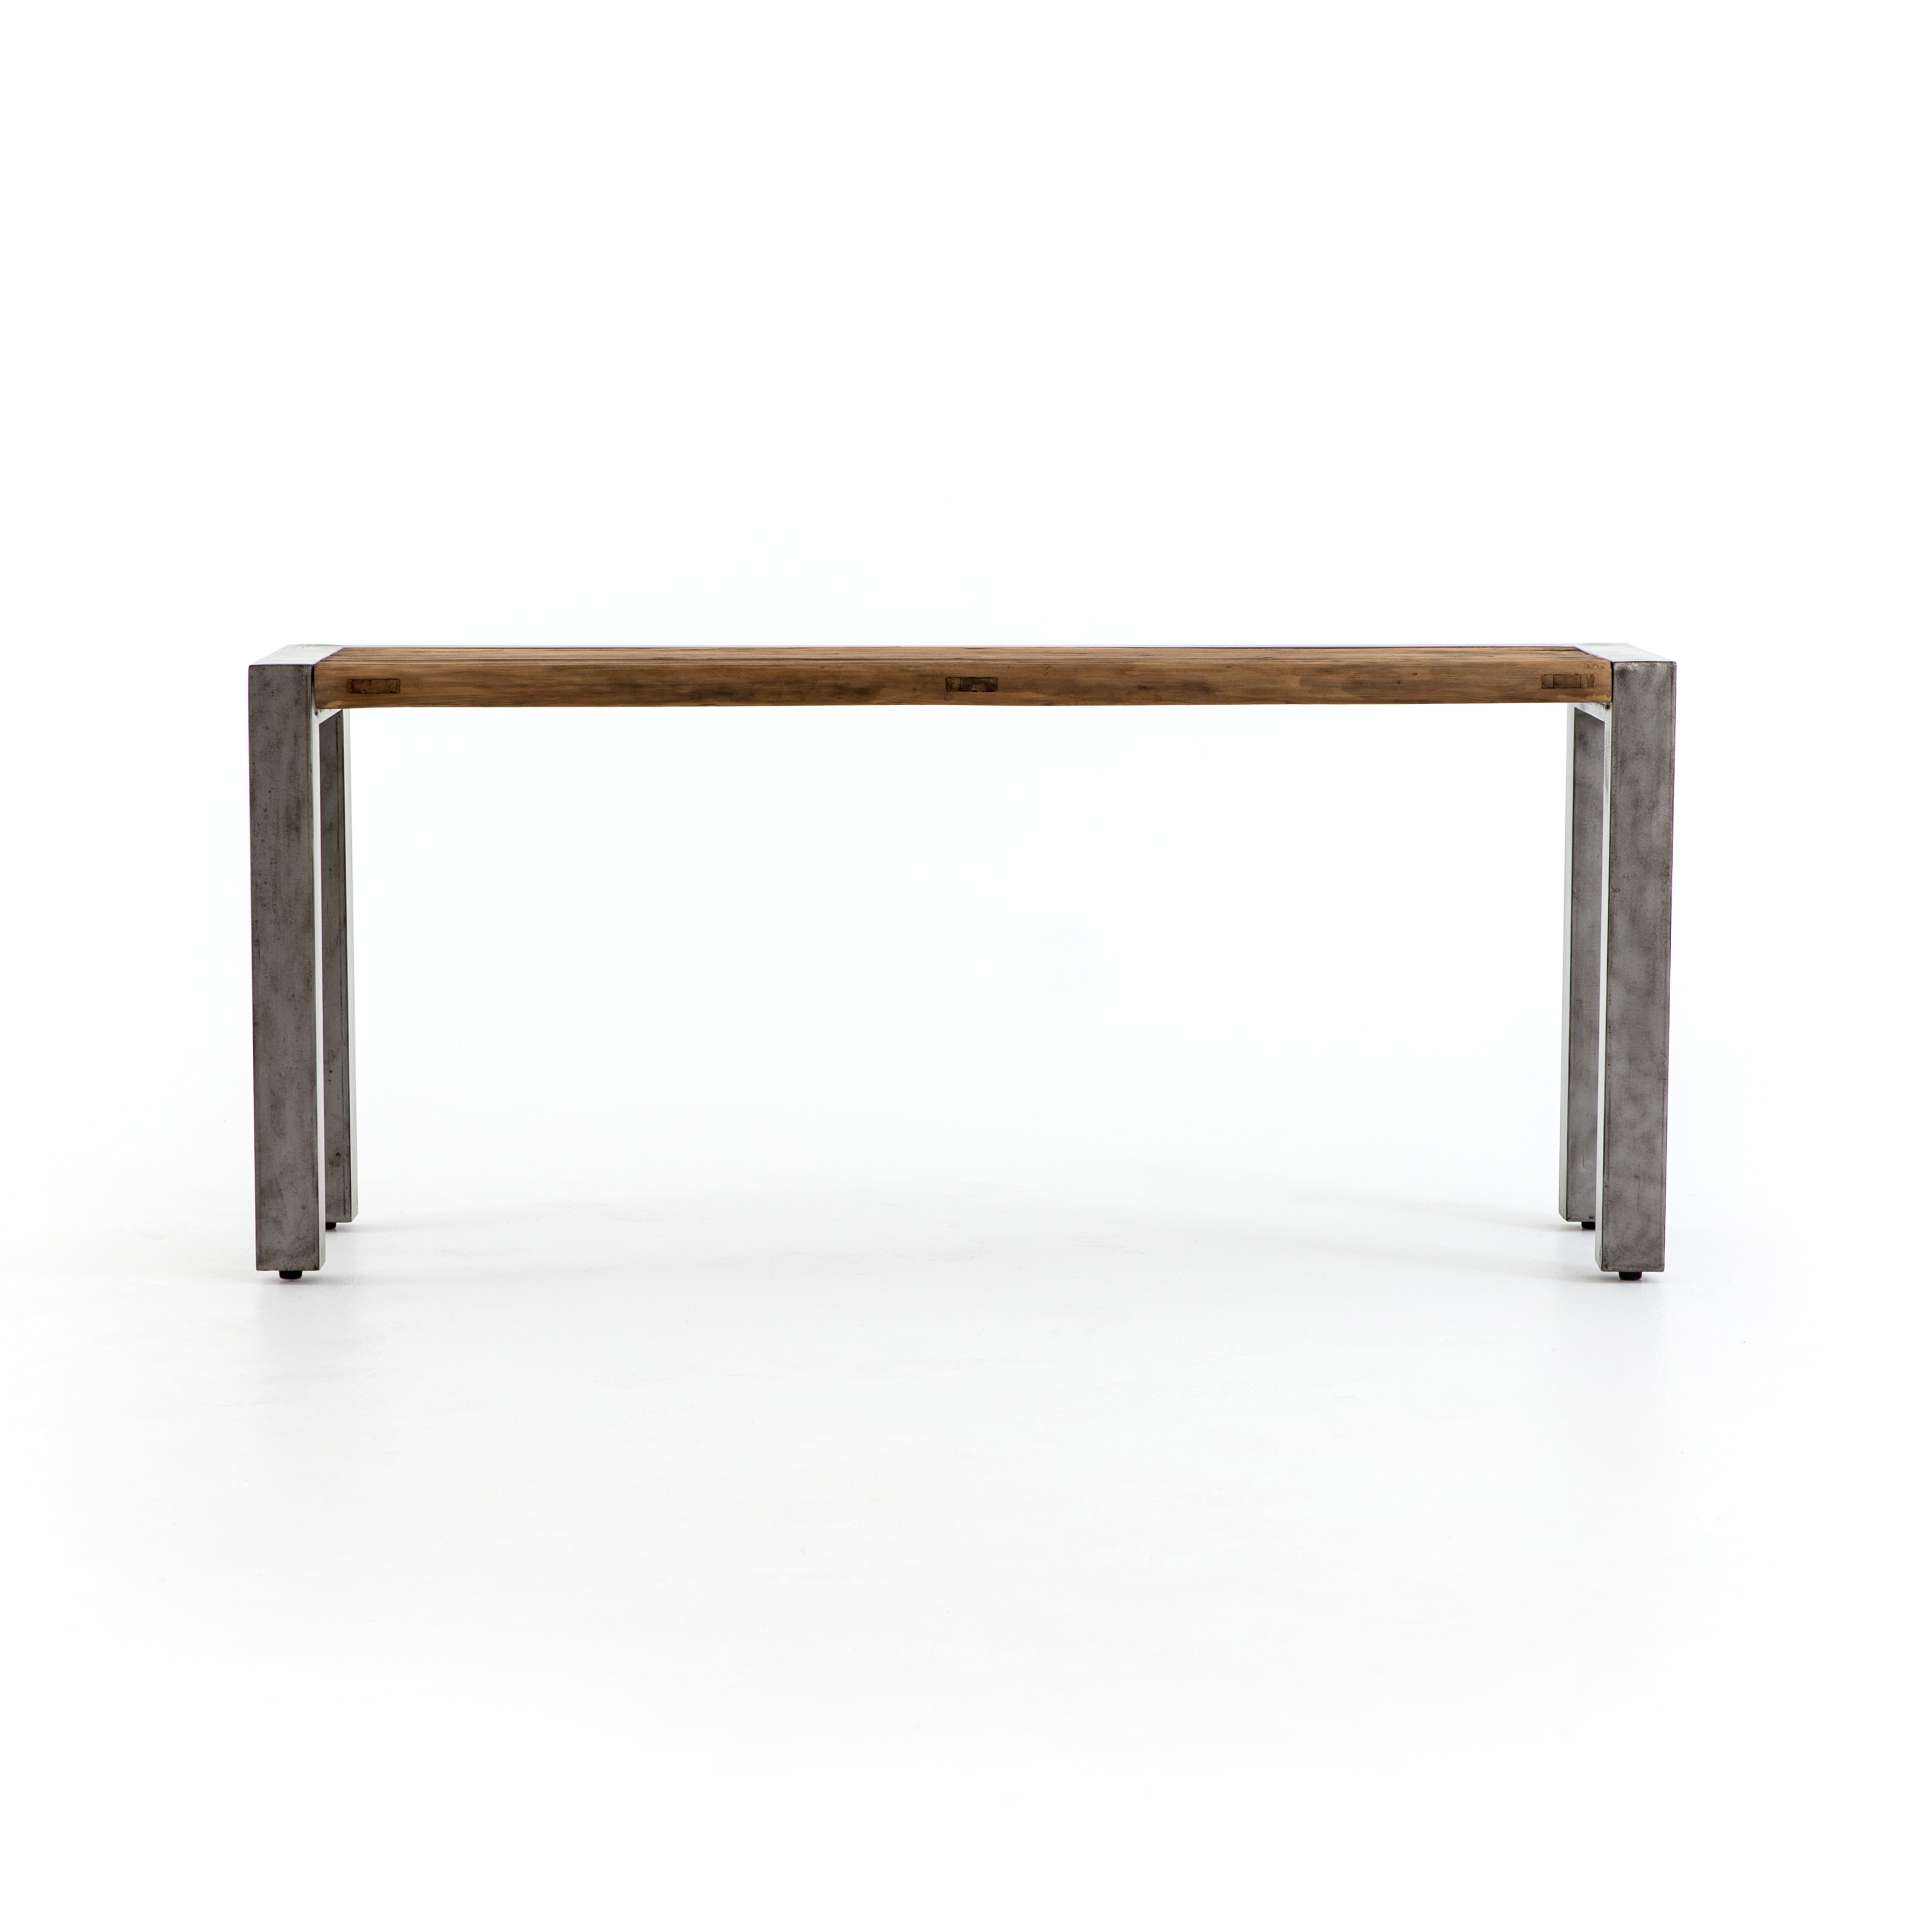 Reclaimed Wood Console Tables You'll Love | Wayfair With Mix Patina Metal Frame Console Tables (View 13 of 20)